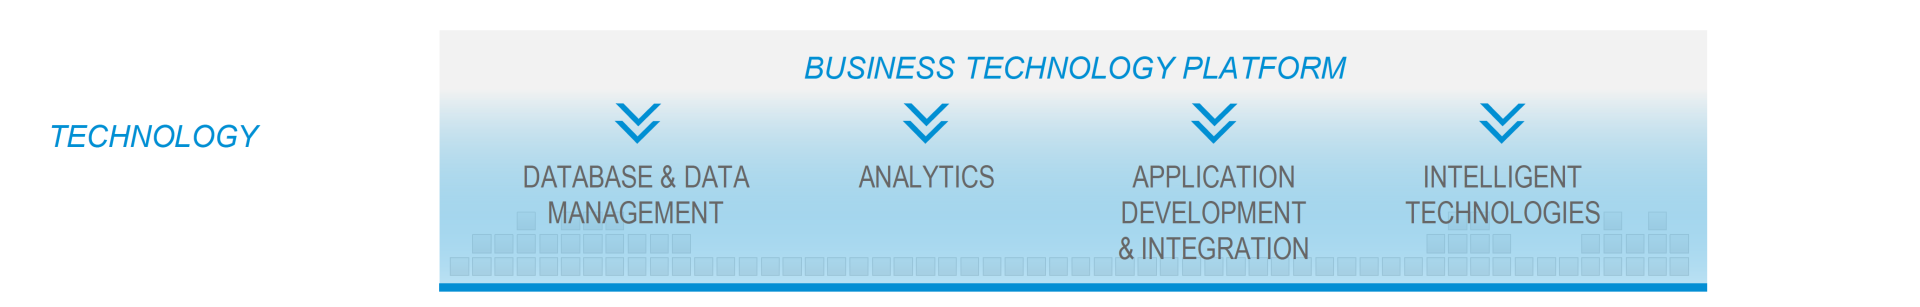 Business Technology Platform | RISE with SAP